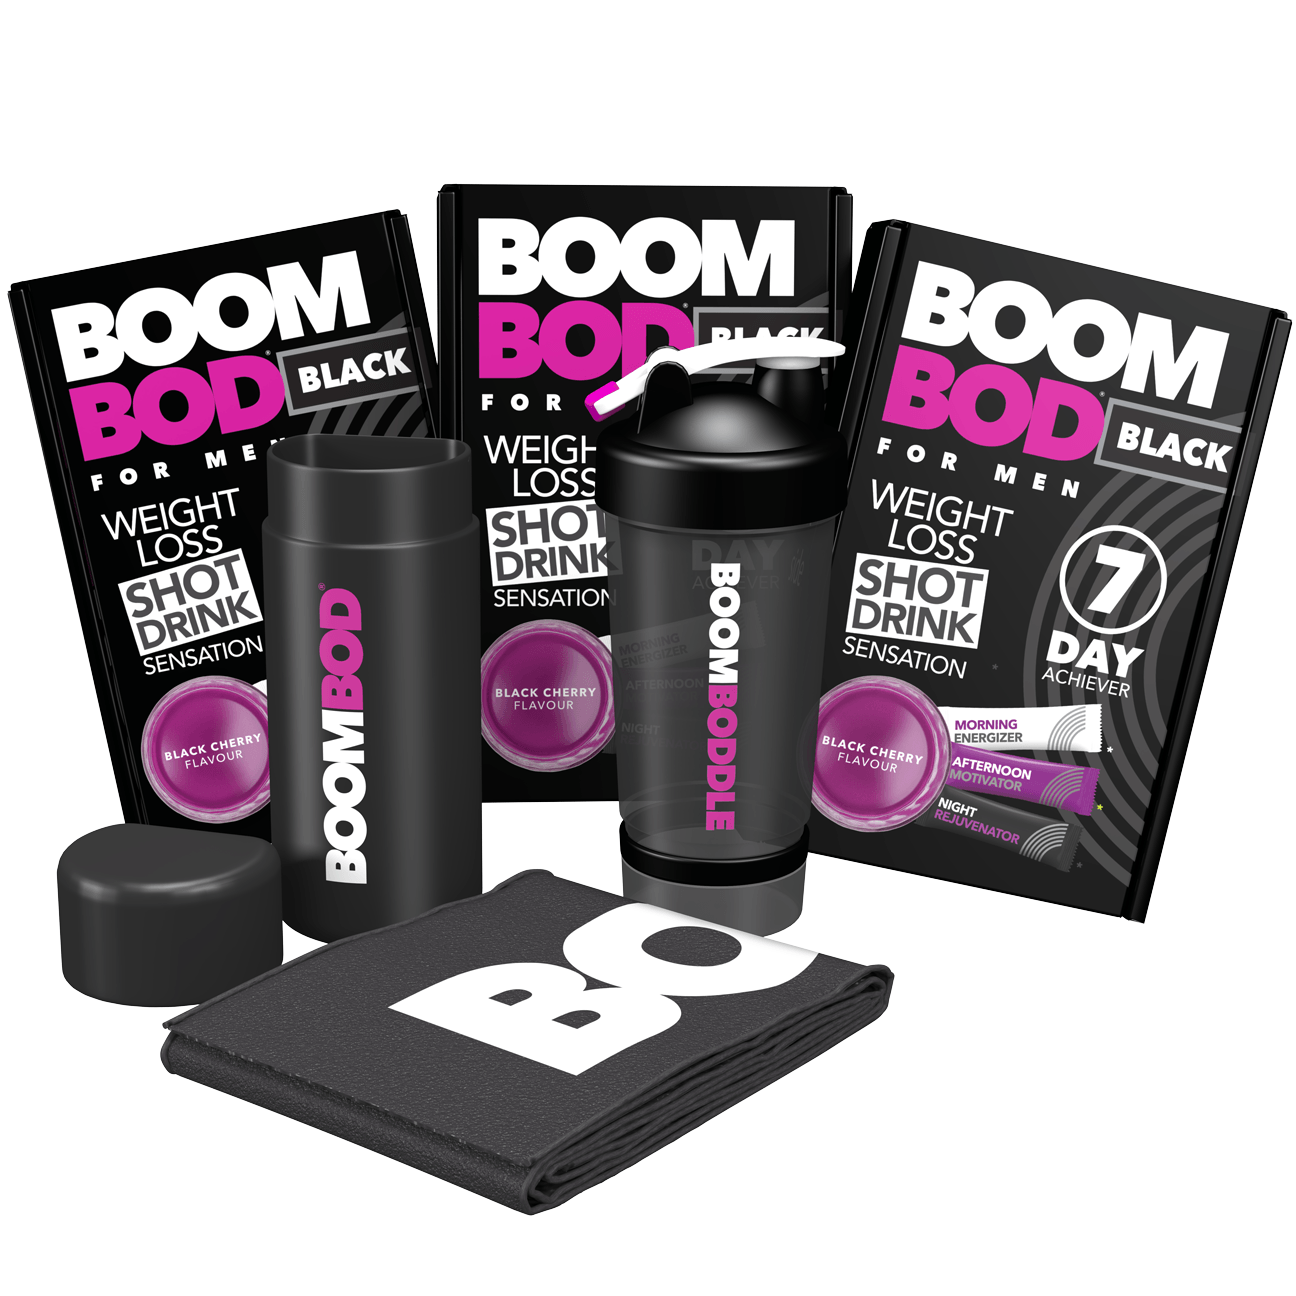 Boombundle | 3 X 7 Day Achiever Men's | Black Workout Towel | Black 20oz Shaker Bottle | Black Cherry